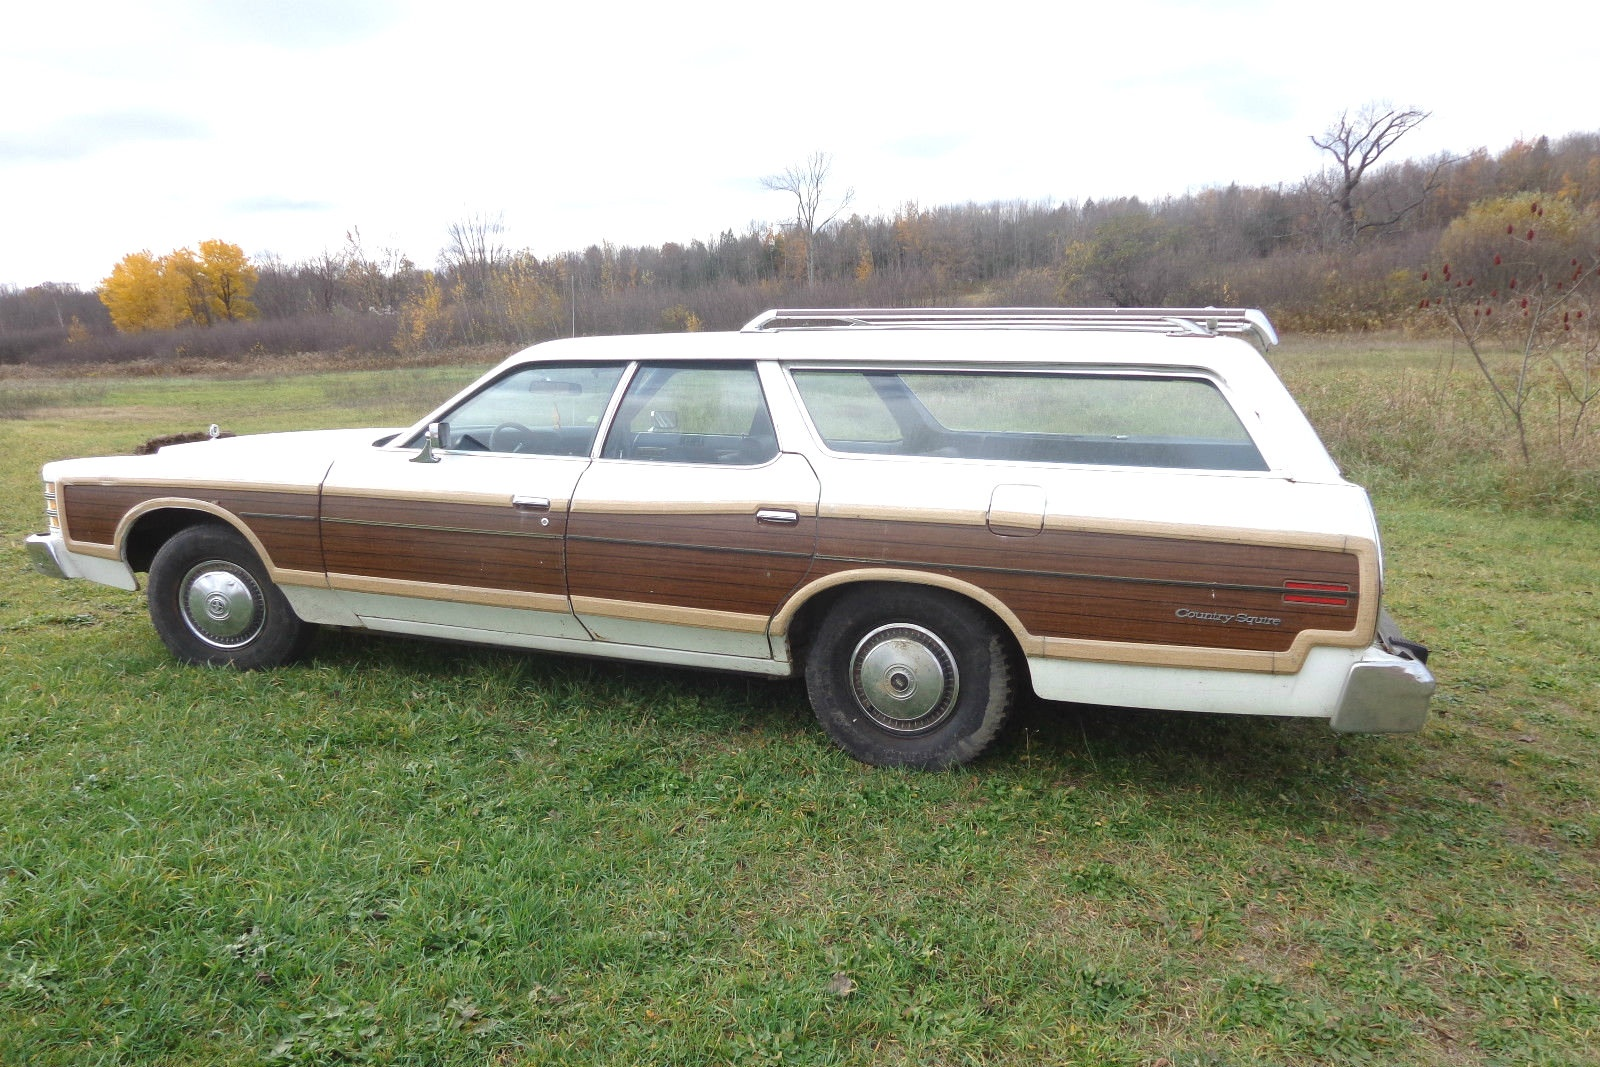 Last Land Barge 1978 Ford Ltd Country Squire Wagon